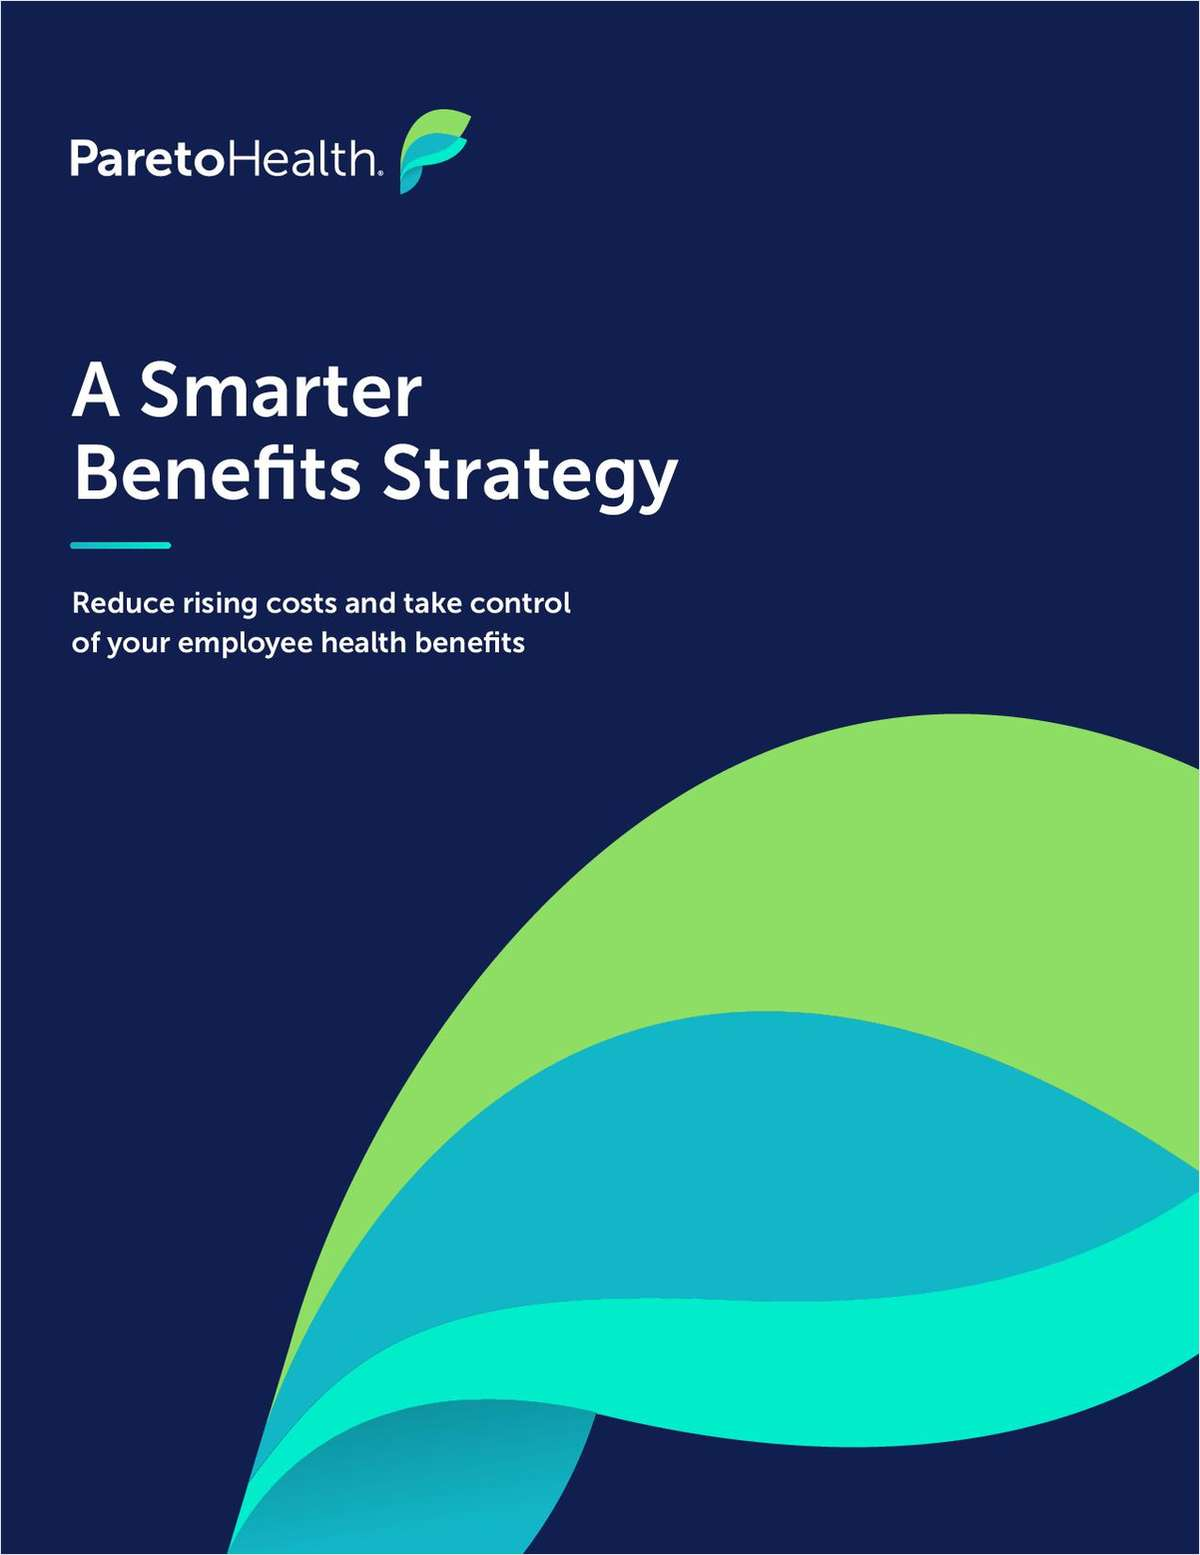 A Smarter Benefits Strategy: Help Small & Mid-Sized Clients Get Off the Fully-Insured Treadmill